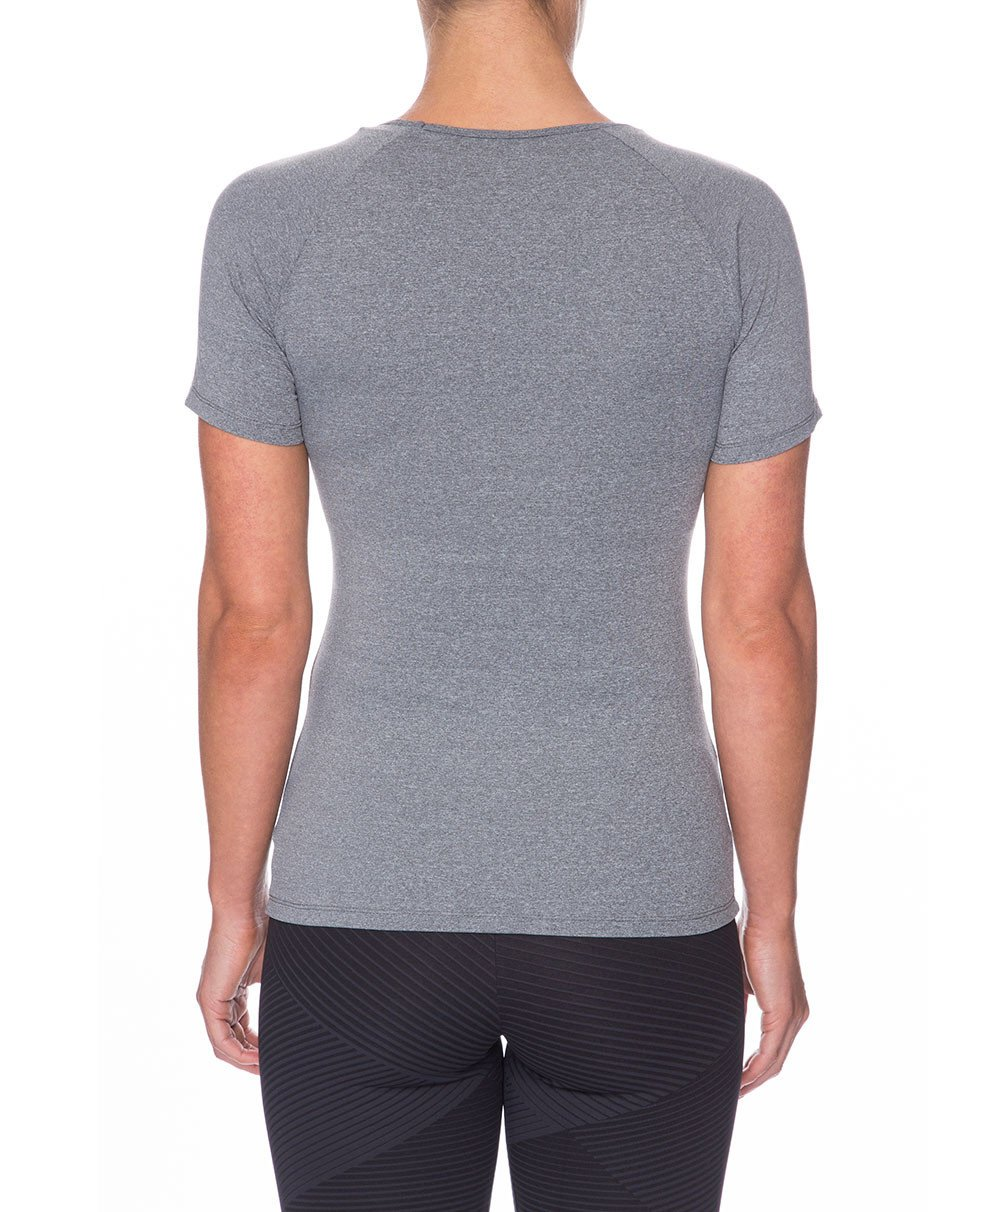 Front view product image with model for Brasilfit activewear Q T-shirt in gray.  The Q T-shirt is part of our basics activewear collection that is focused on performance, high compression activewear.